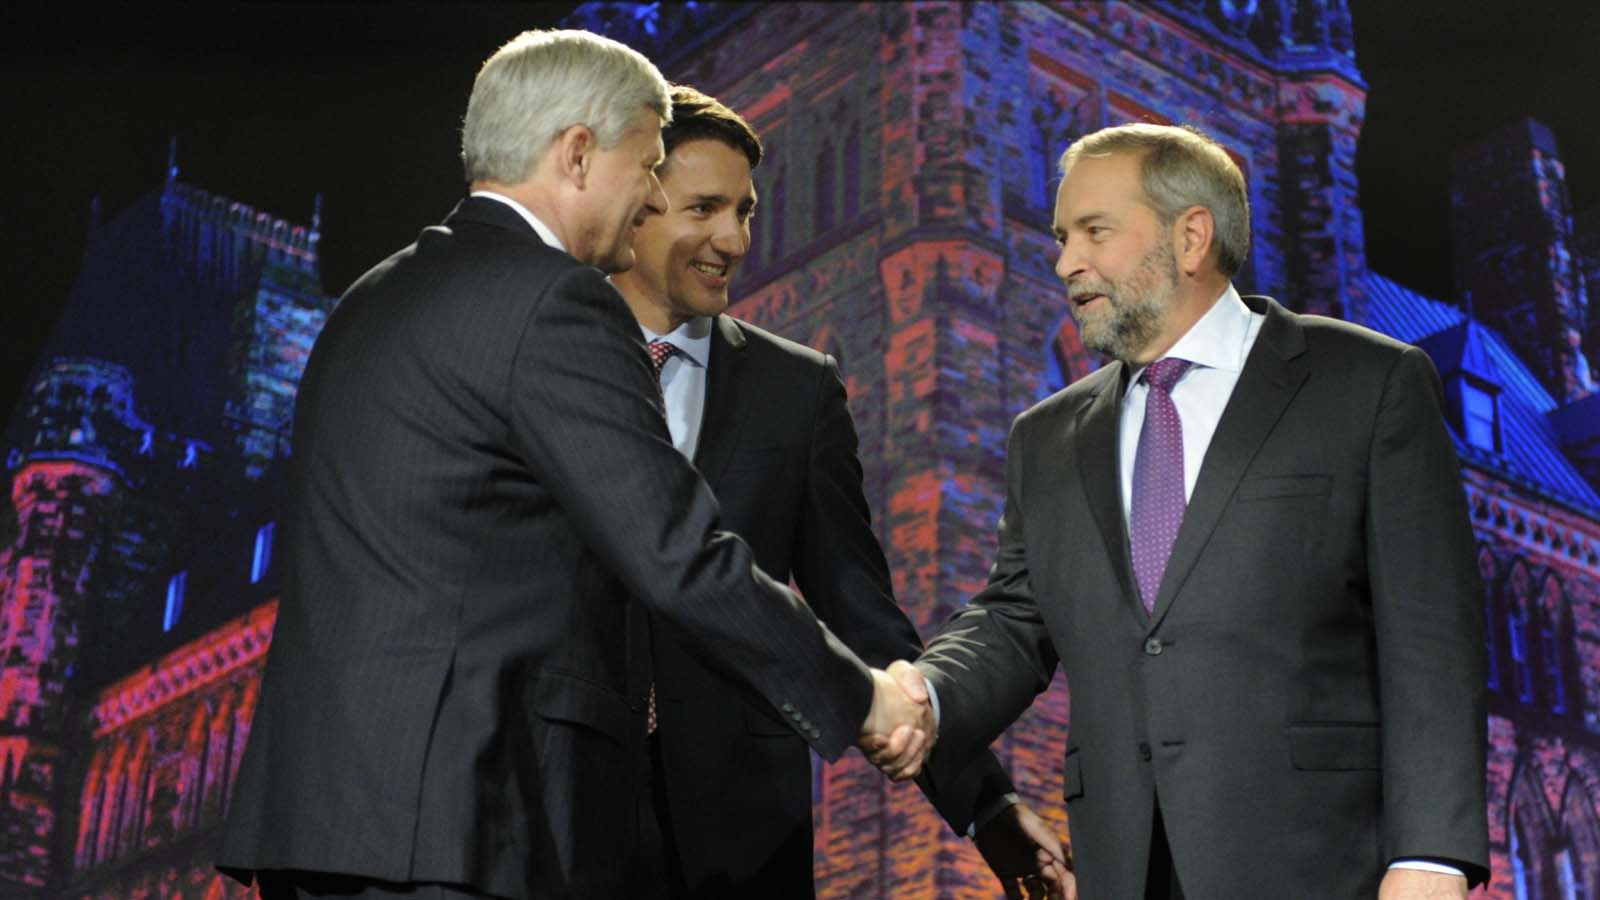 Conservative leader Stephen Harper (L), greets NDP leader Thomas Mulcair (R) as Liberal leader Justin Trudeau looks on prior to the beginning of  the Globe and Mail Leaders Debate in Calgary, Alberta September 17, 2015. (MIKE STURK/Reuters)